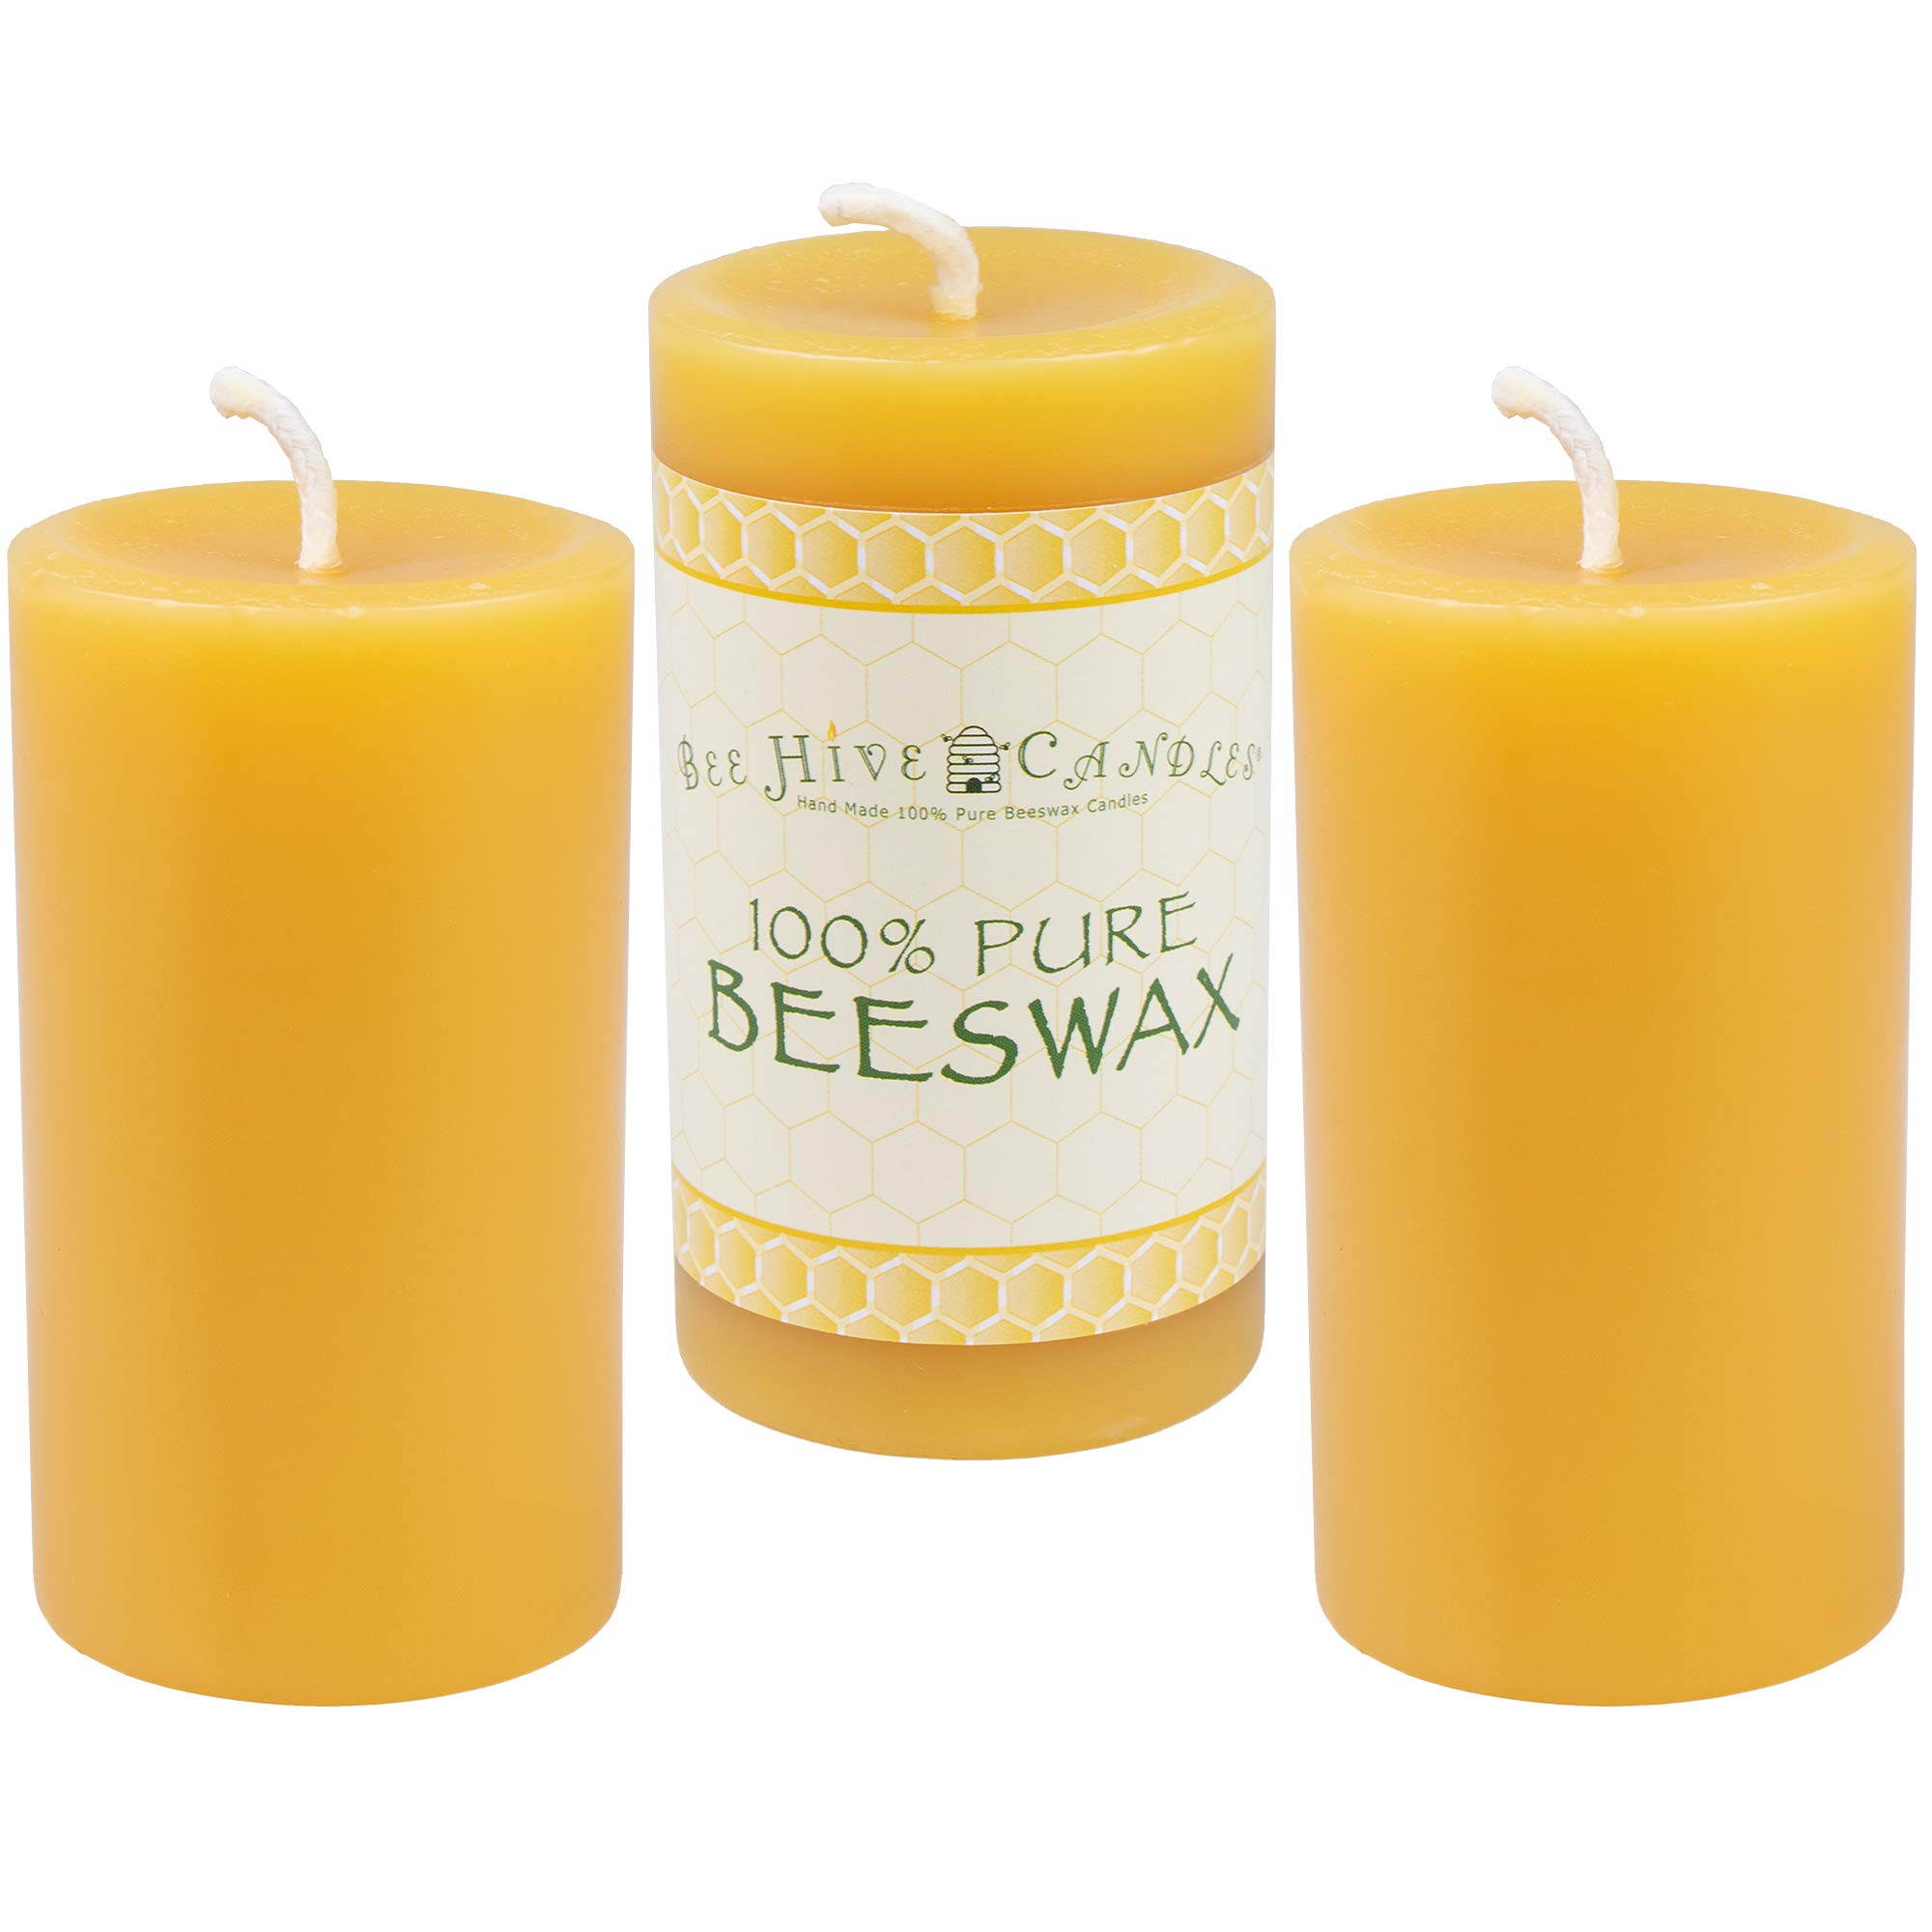 Bee Hive Candles 100% Pure Beeswax Pillar Candle (2'' x 3'' (3-Pack))